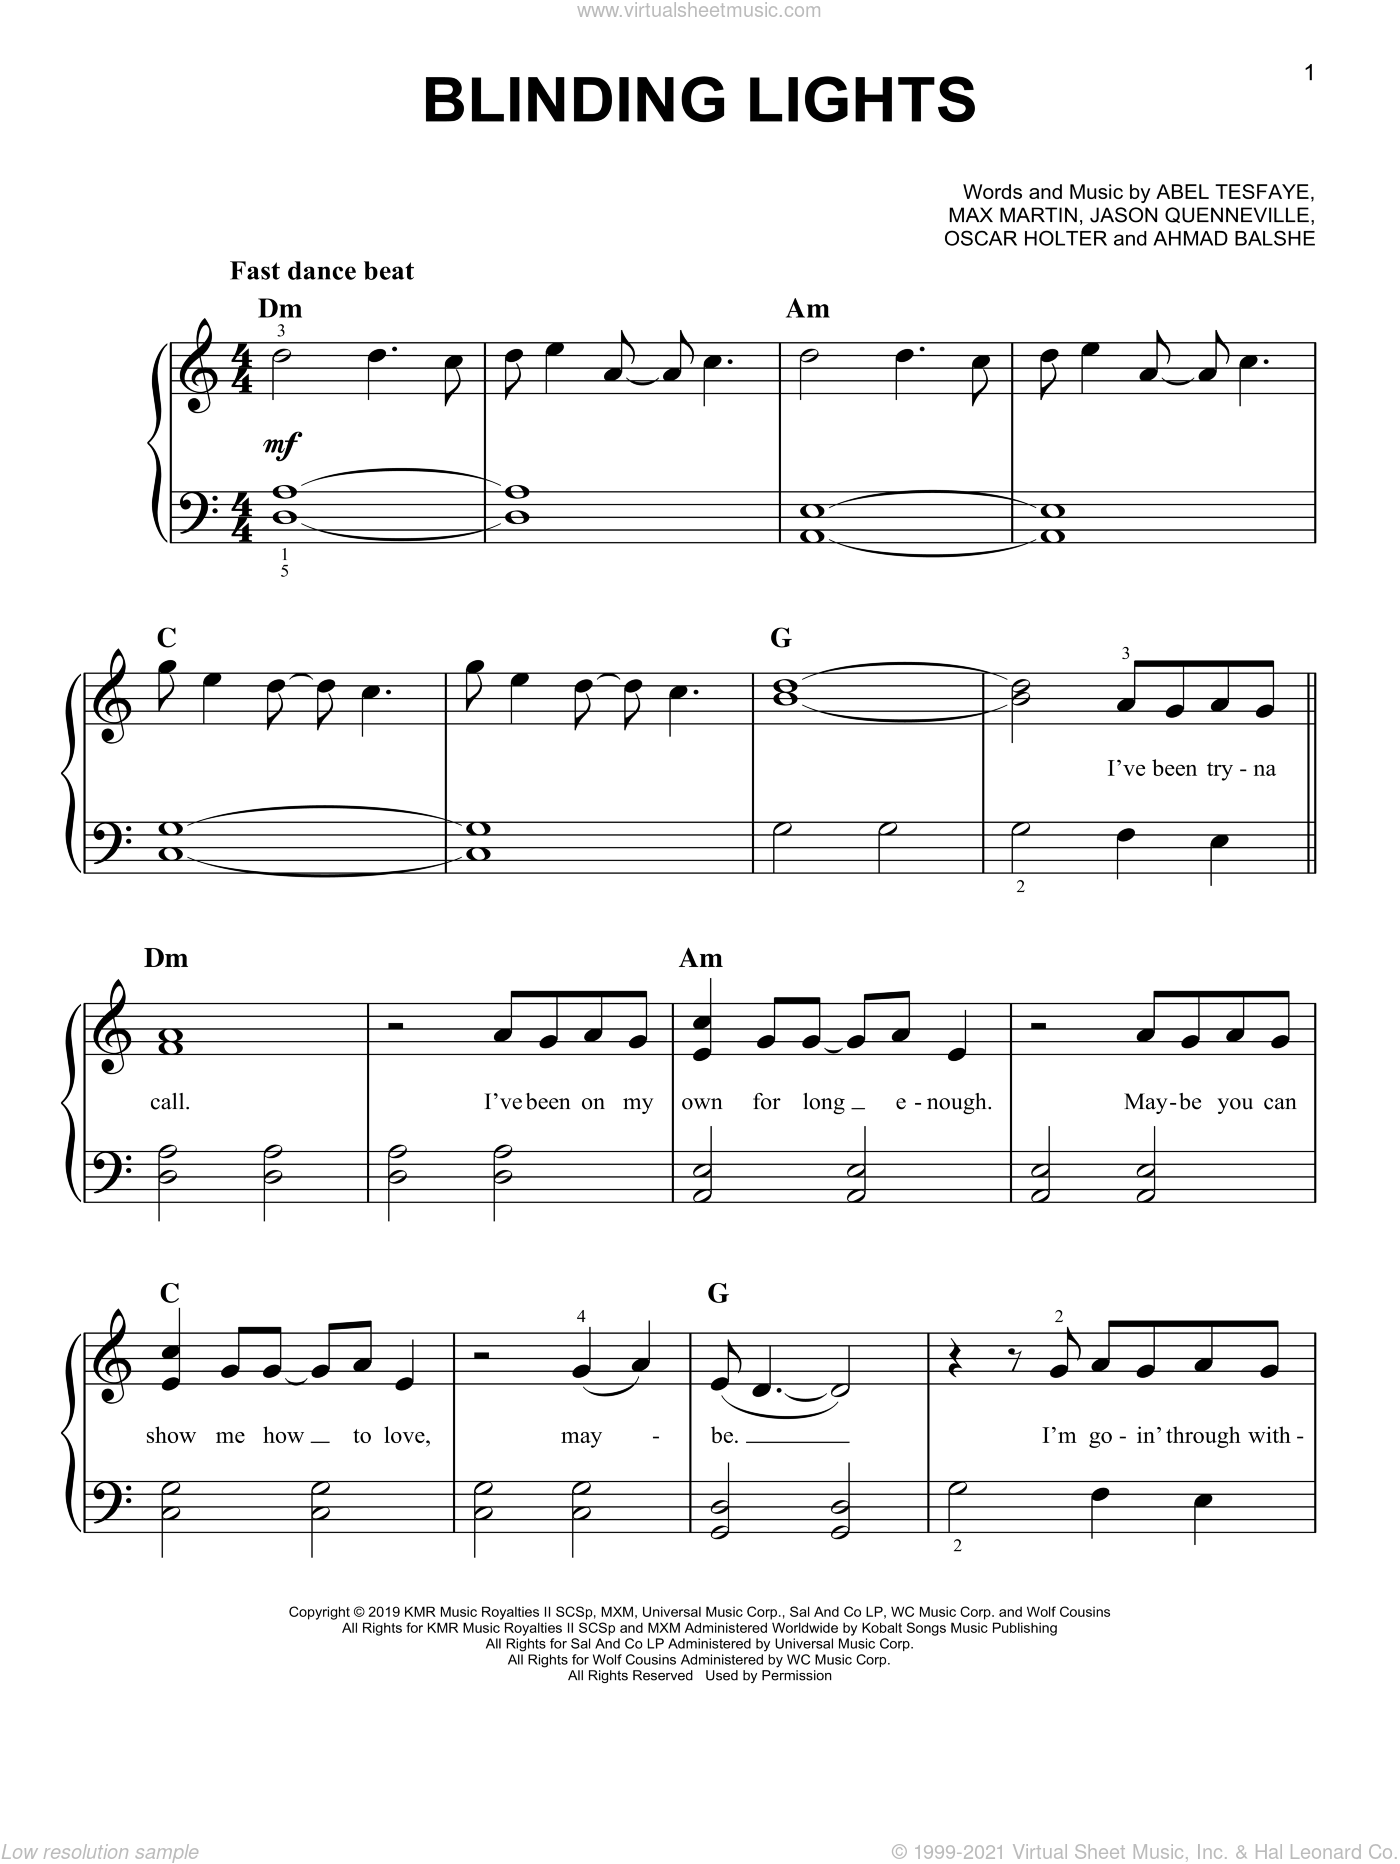 Blinding Lights sheet music for piano solo by The Weeknd, Abel Tesfaye, Ahmad Balshe, Jason Quenneville, Max Martin and Oscar Holter, easy skill level